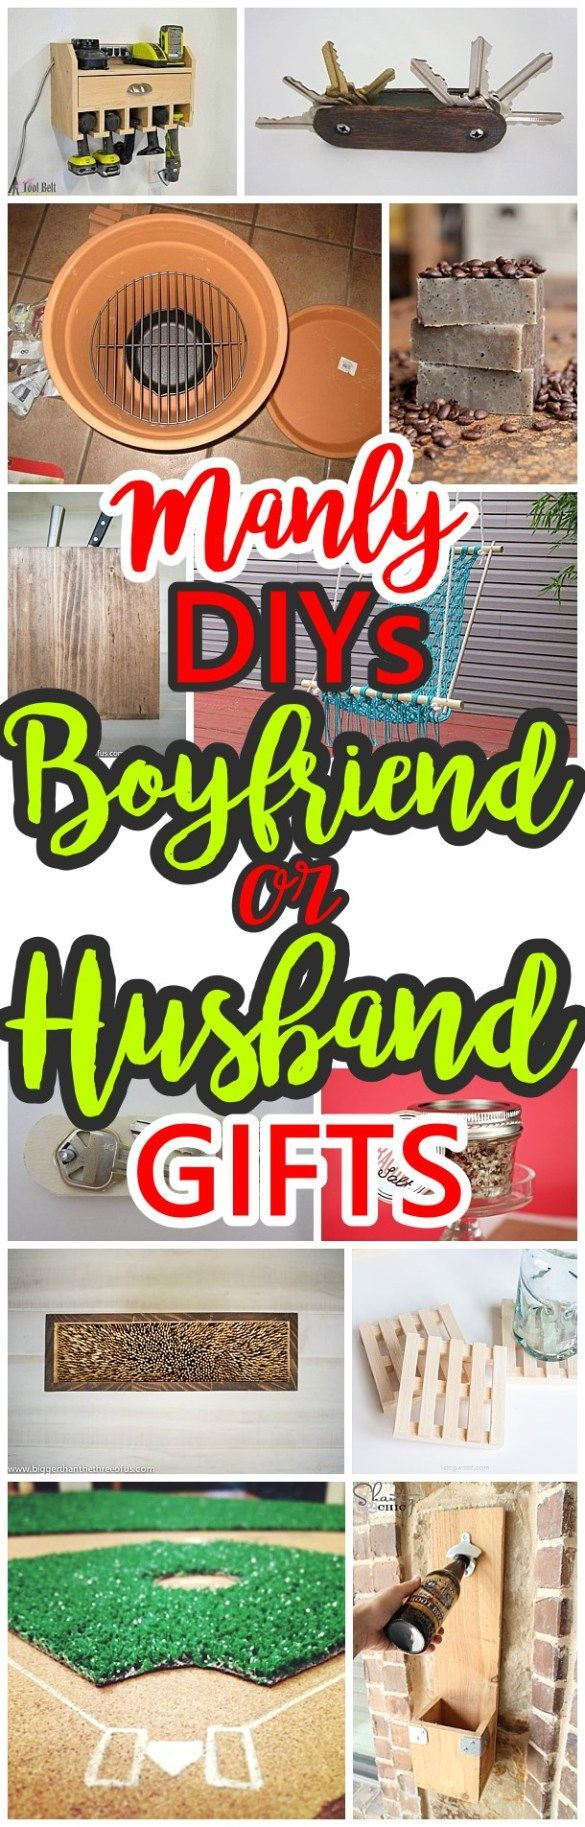 Manly do it yourself boyfriend and husband gift ideas masculine do it yourself manly gift ideas for boyfriends husbands sons brothers uncles cousins or any guy on your gift list diy christmas birthdays fathers solutioingenieria Gallery